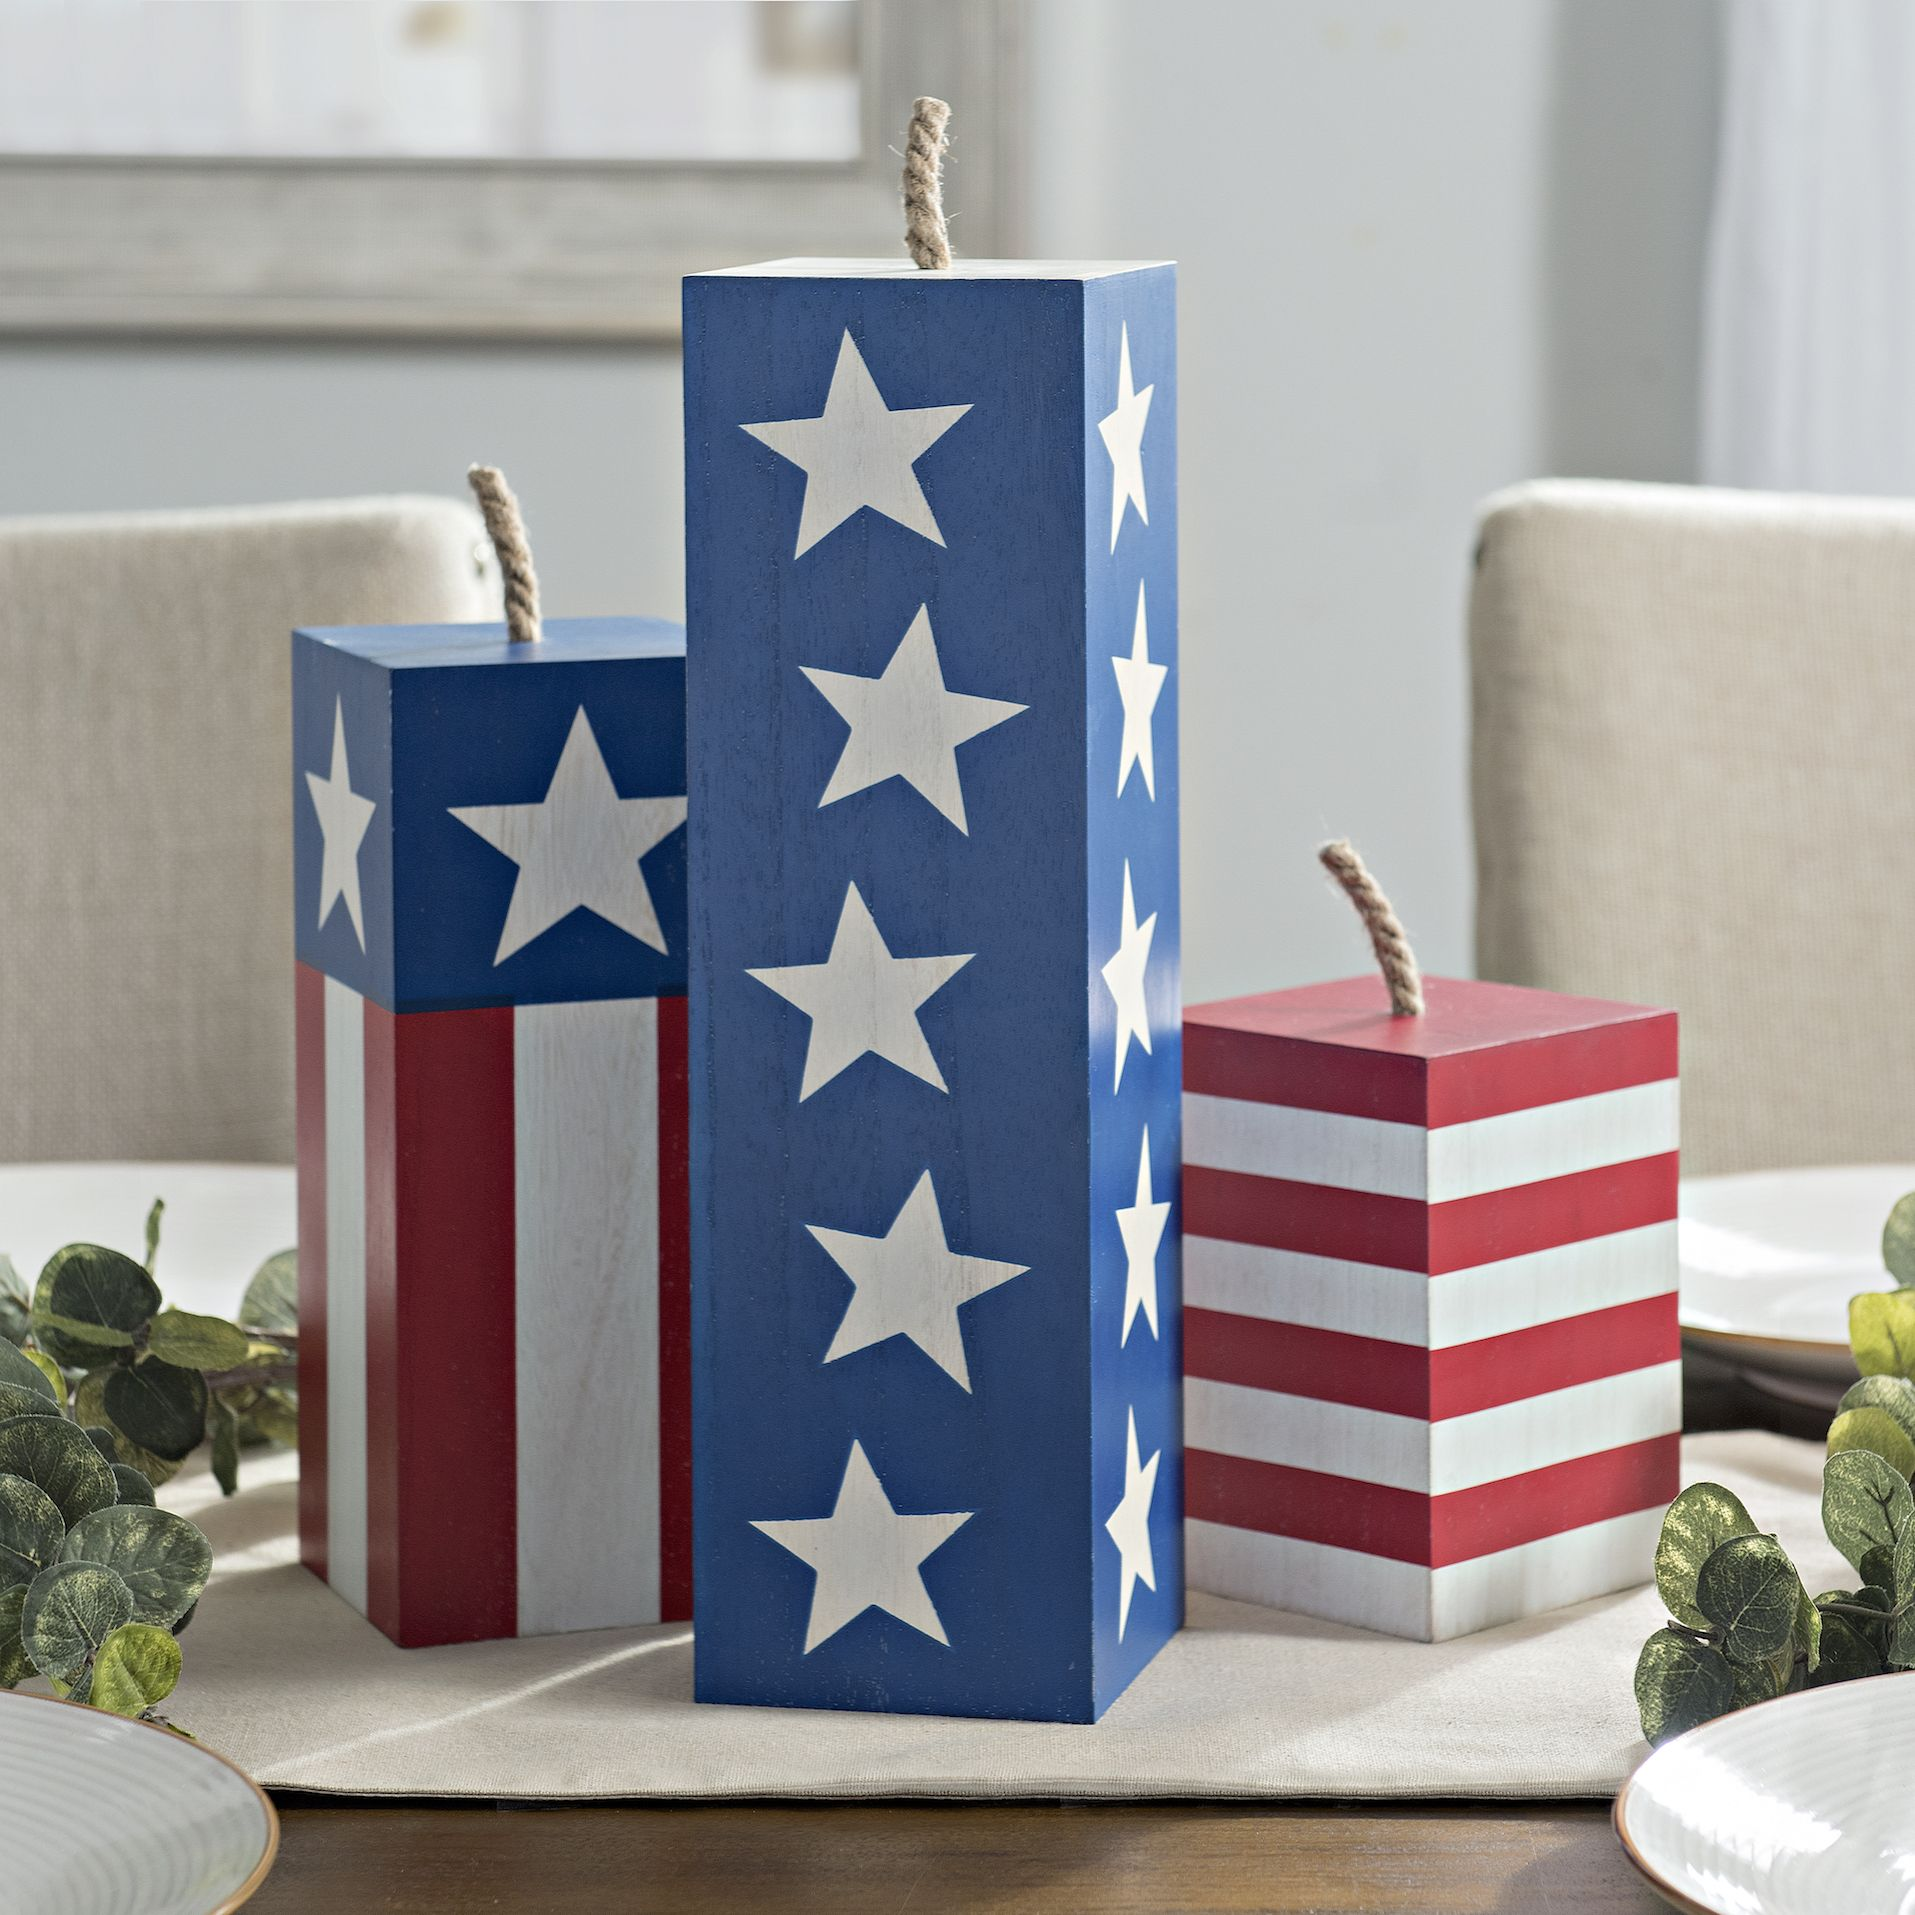 4x4 Wood Crafts Red White And Blue Wooden Firecrackers Set Of 3 Woodworking